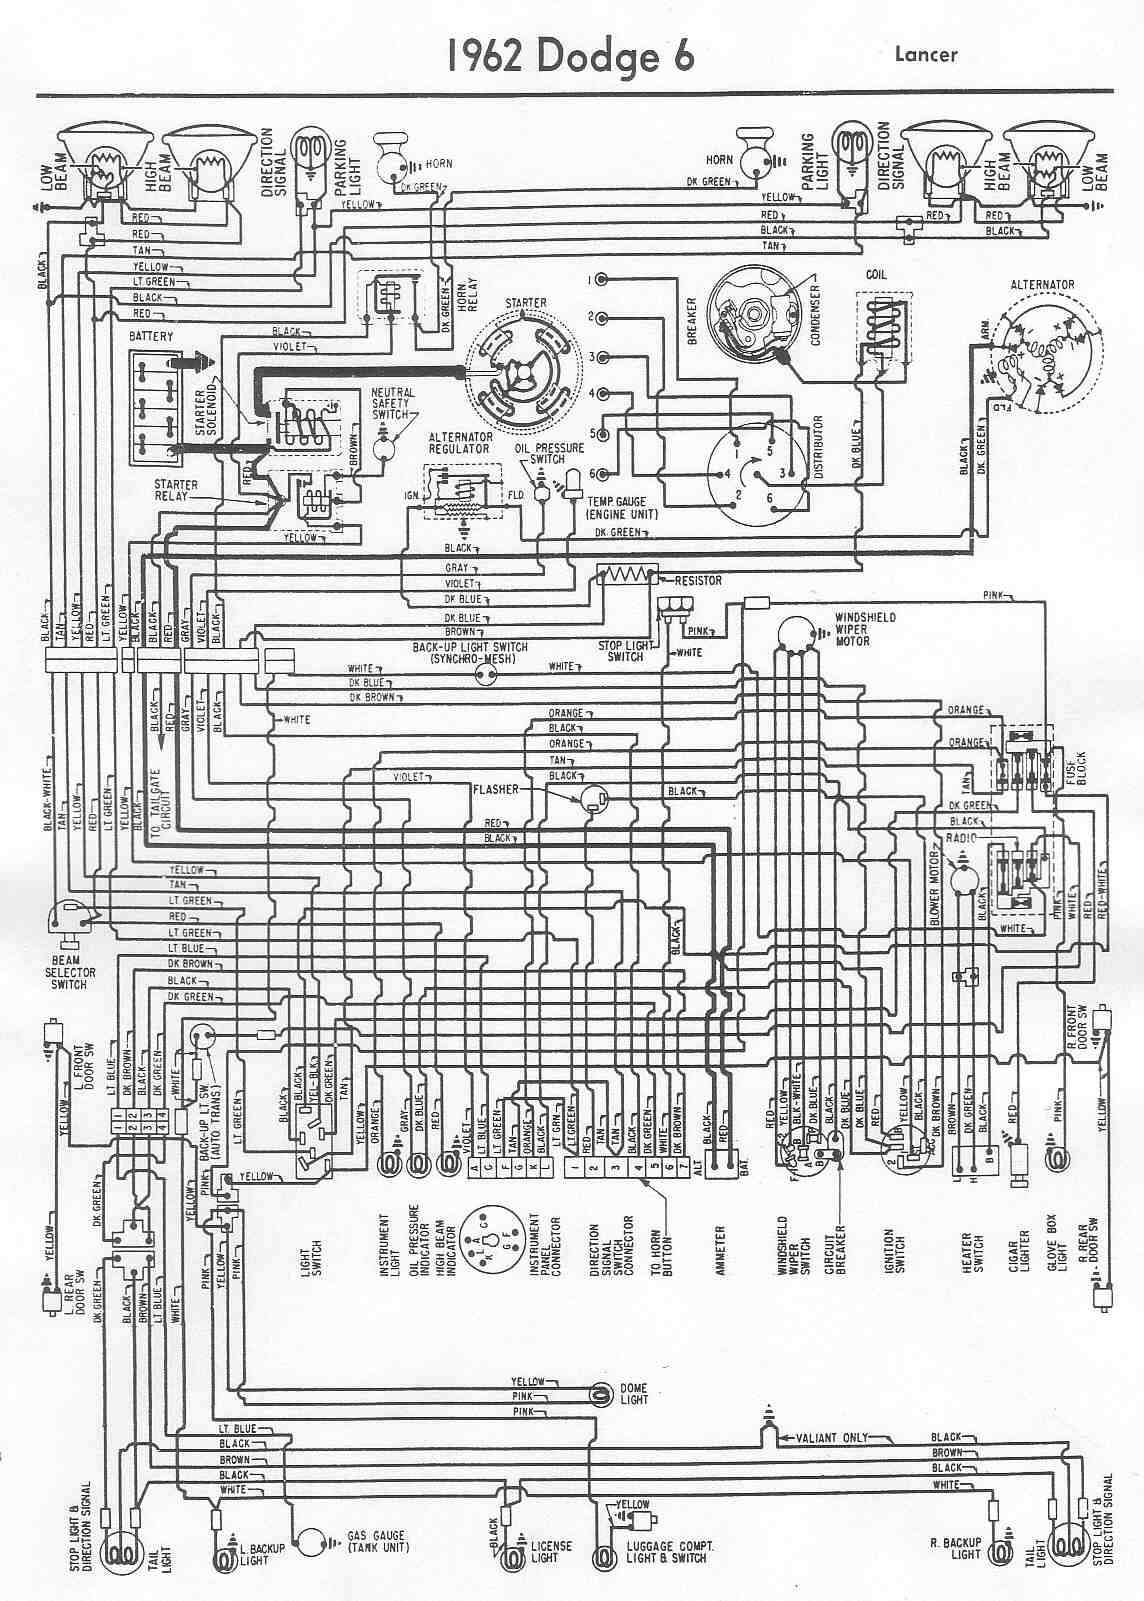 Dodge car manuals wiring diagrams pdf fault codes download asfbconference2016 Image collections